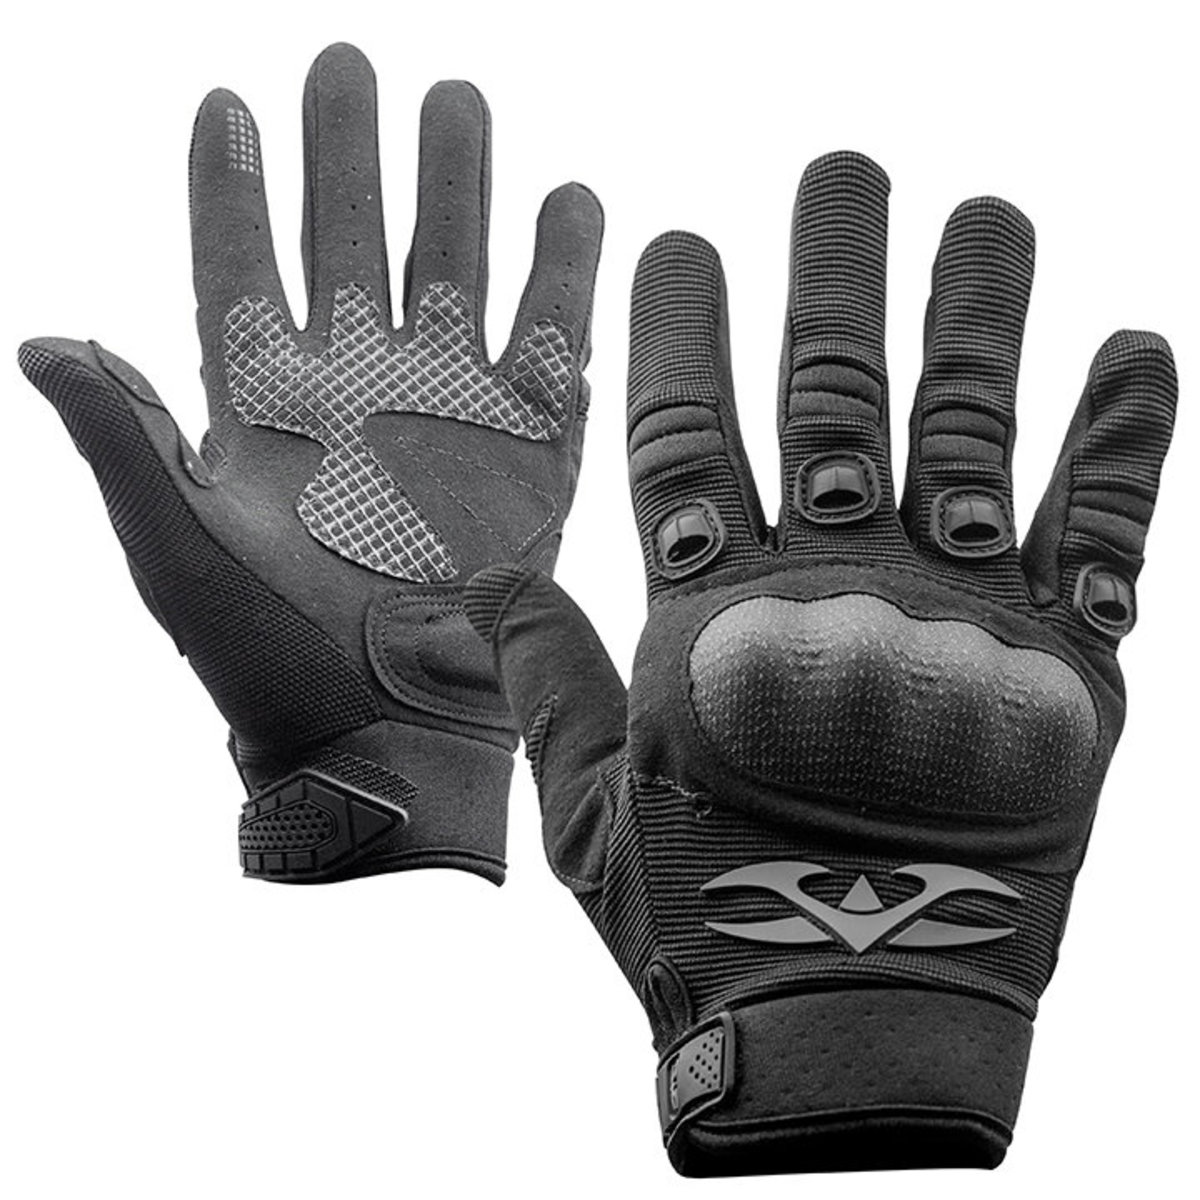 View larger image of Valken Zulu Gloves